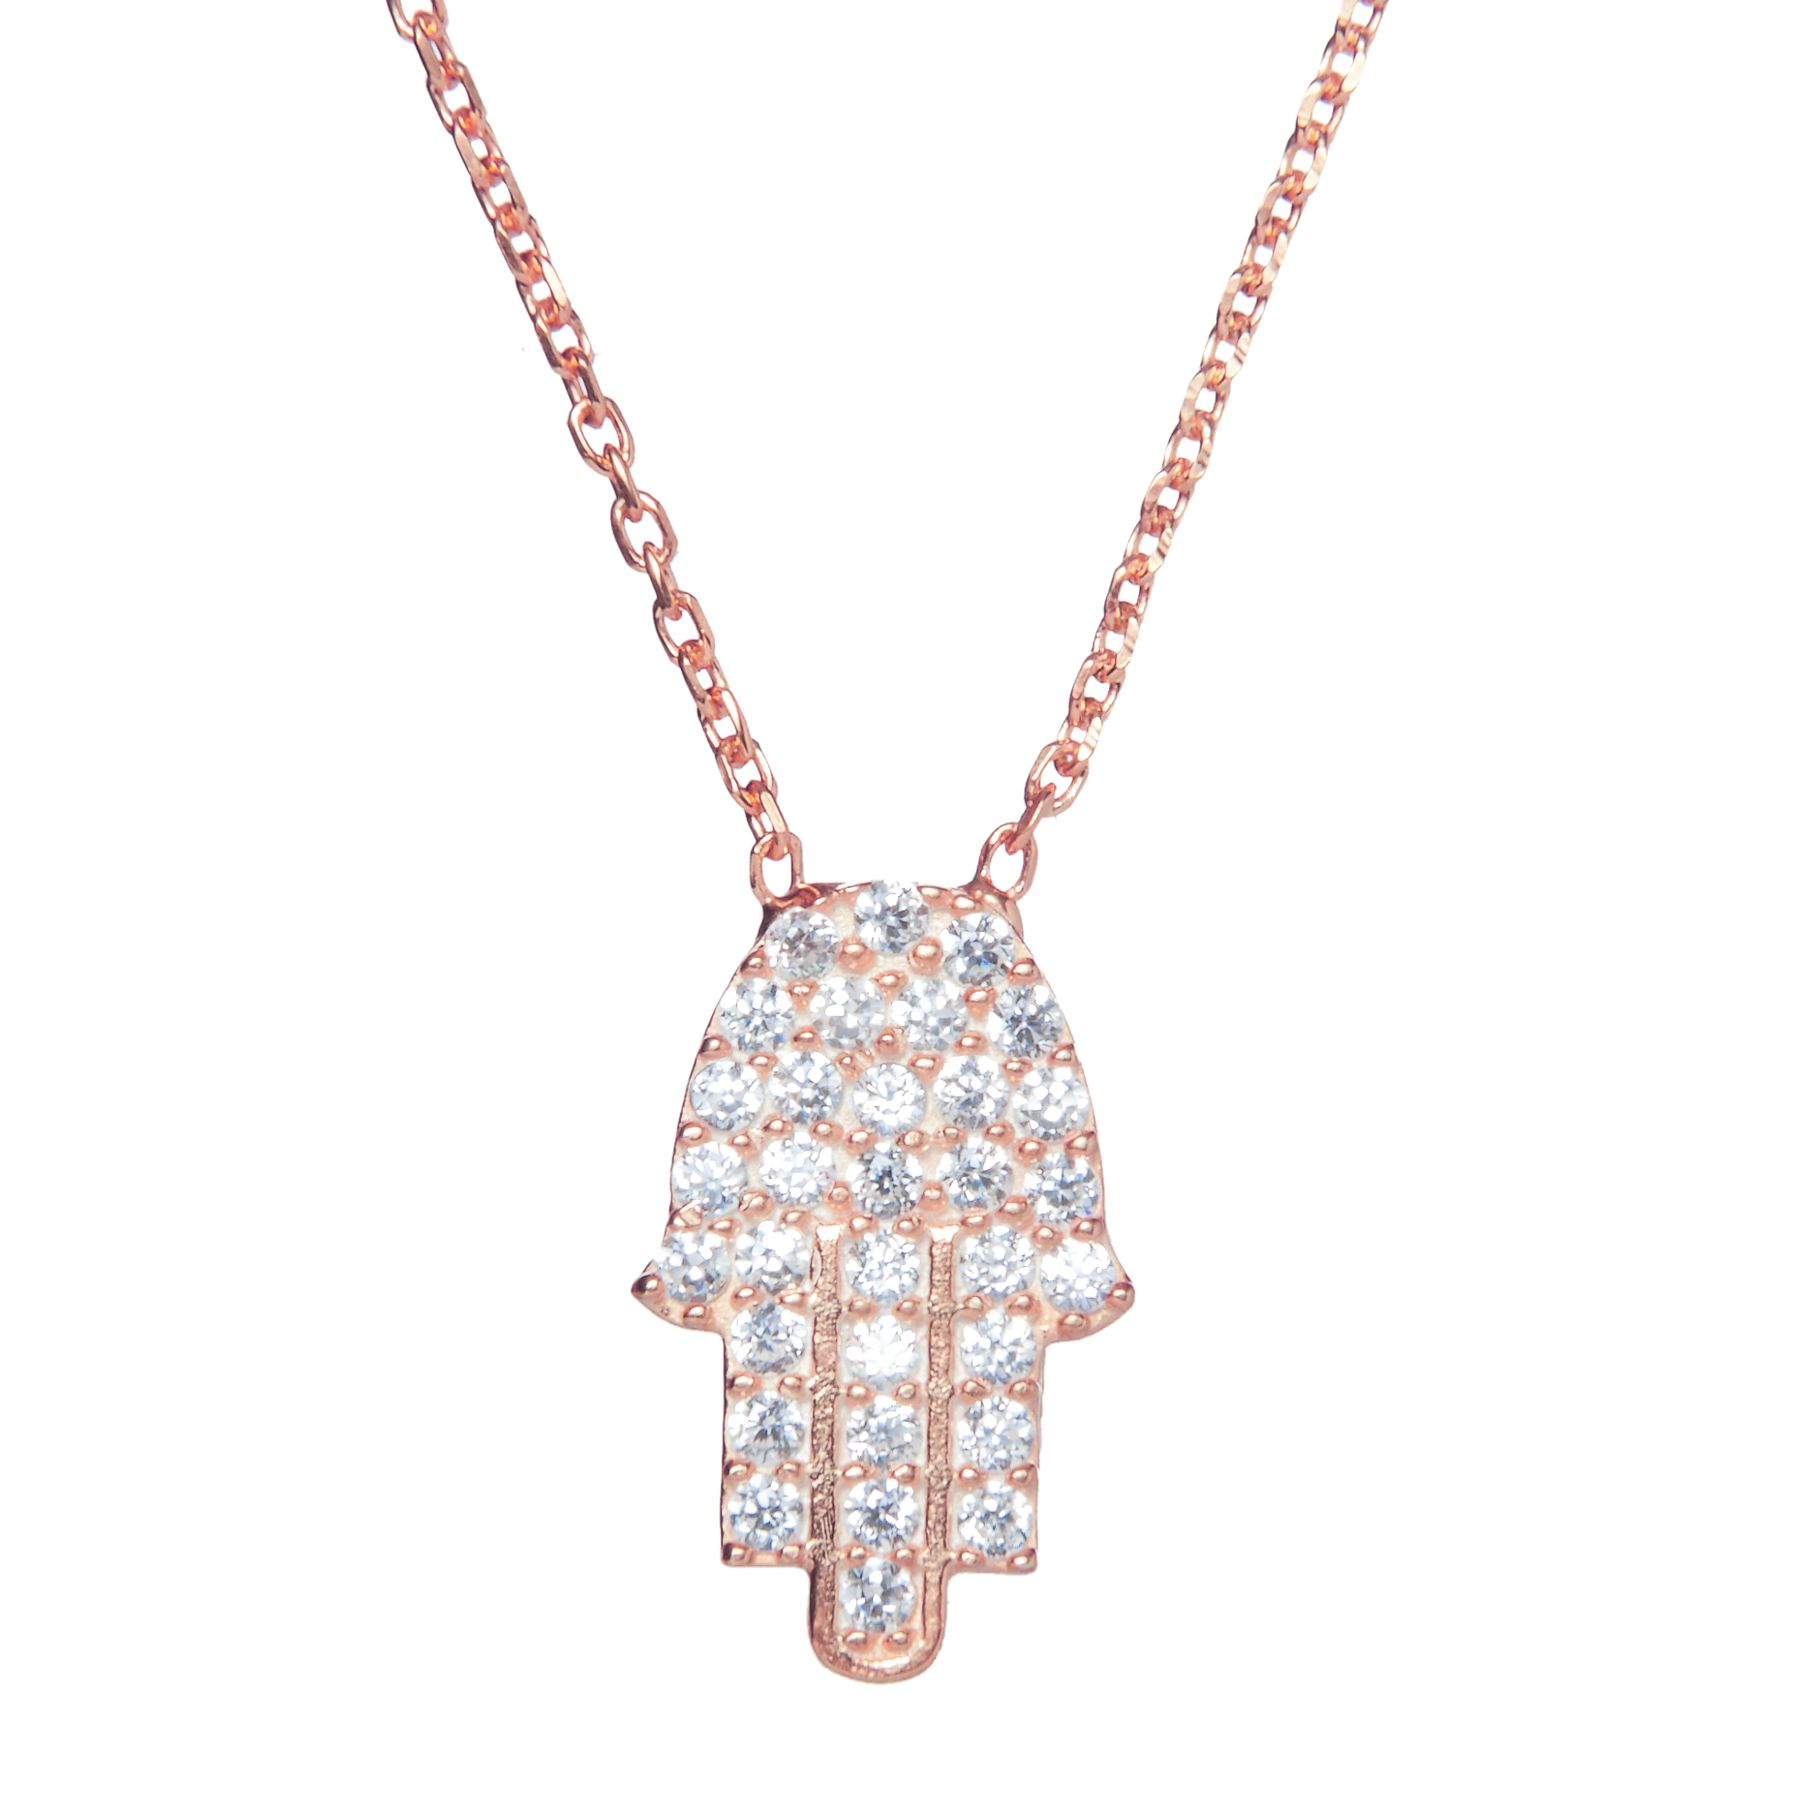 Jewelled hamsa hand necklace